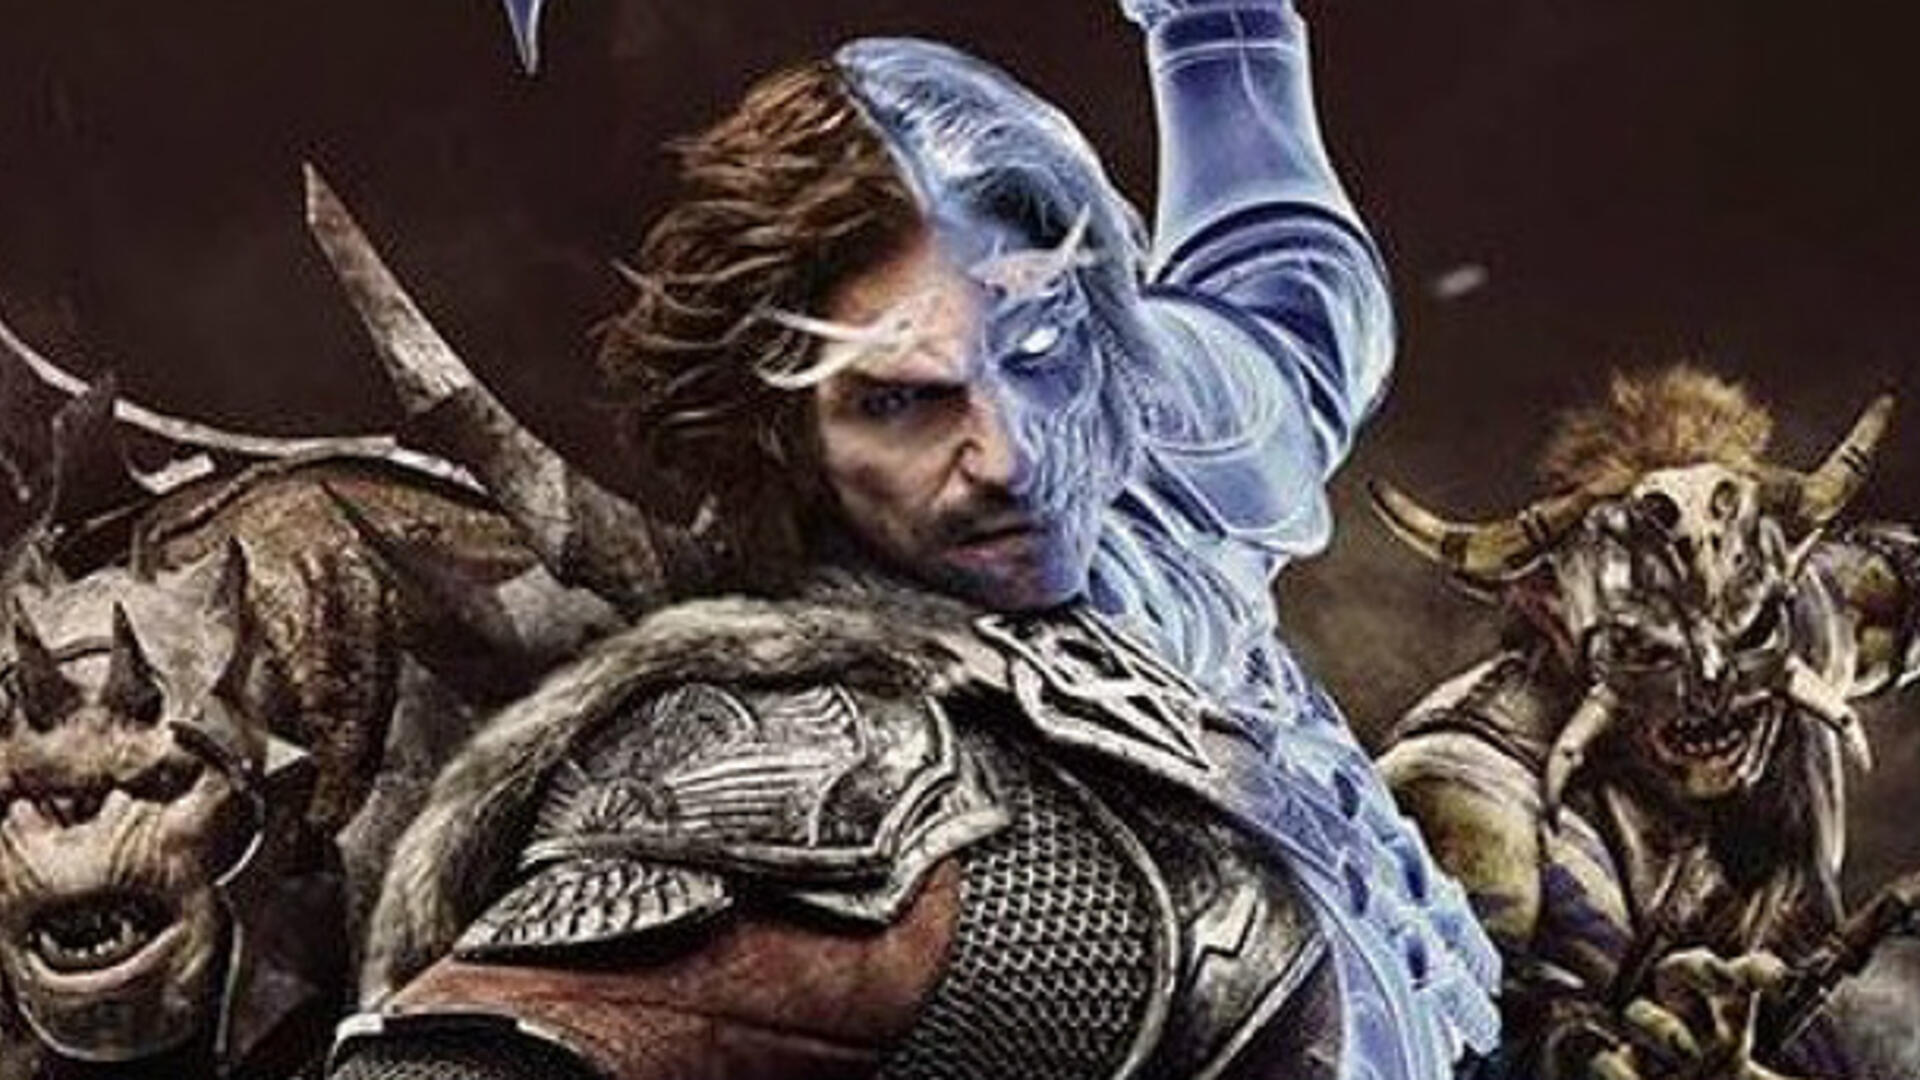 None of October's New Games Outsold Middle Earth: Shadow of War